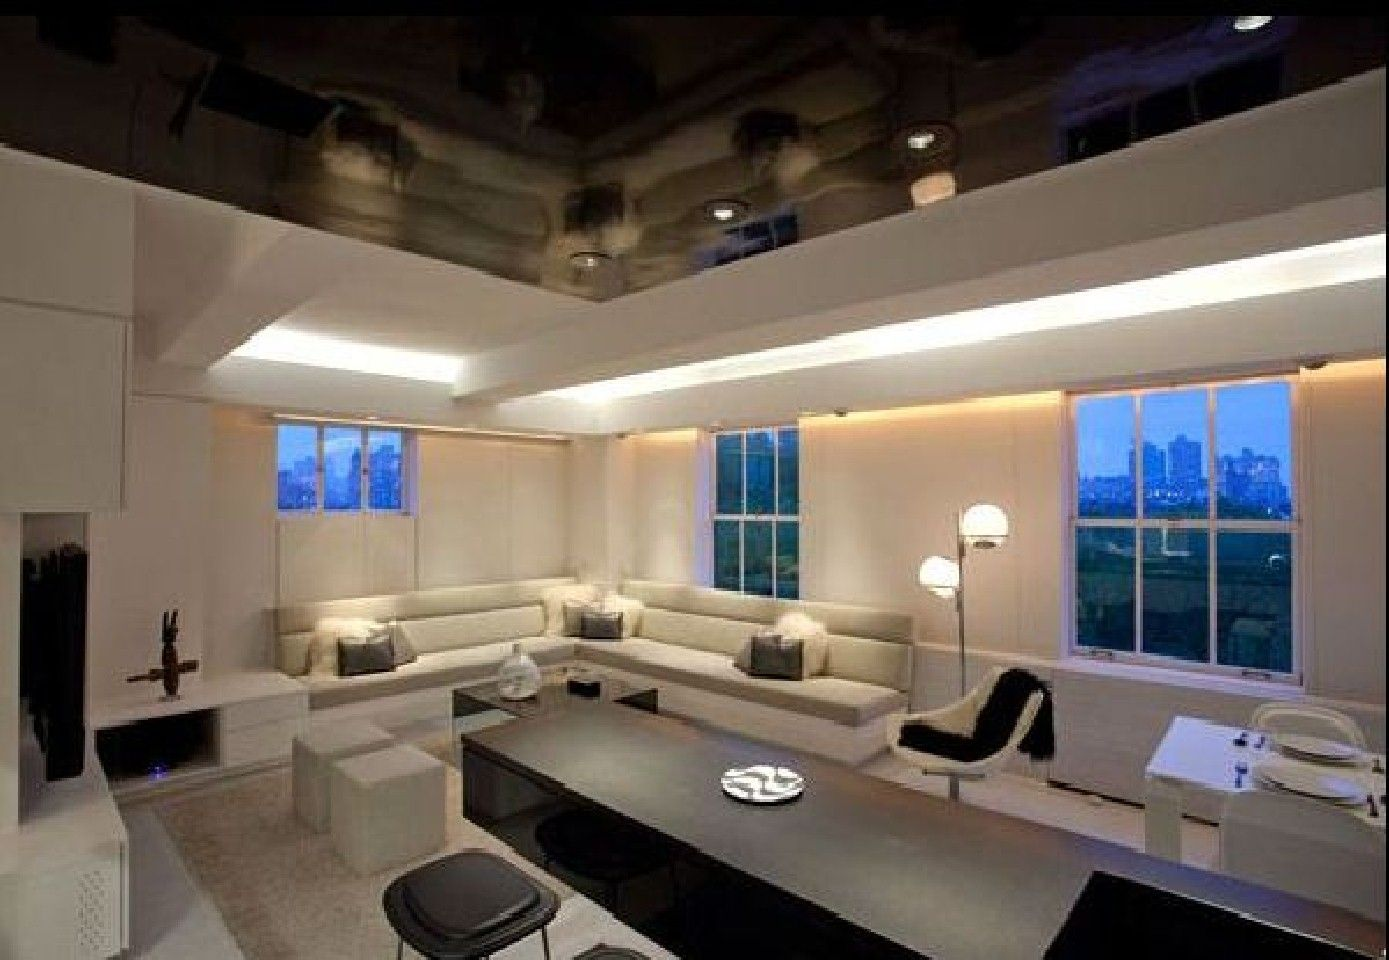 House Interior Lighting  1000 Images About Lighting Interior On Pinterest  Design Japanese Modern Interior And. House Interior Lighting  Interiors Lighting Lighting Crafty Ideas